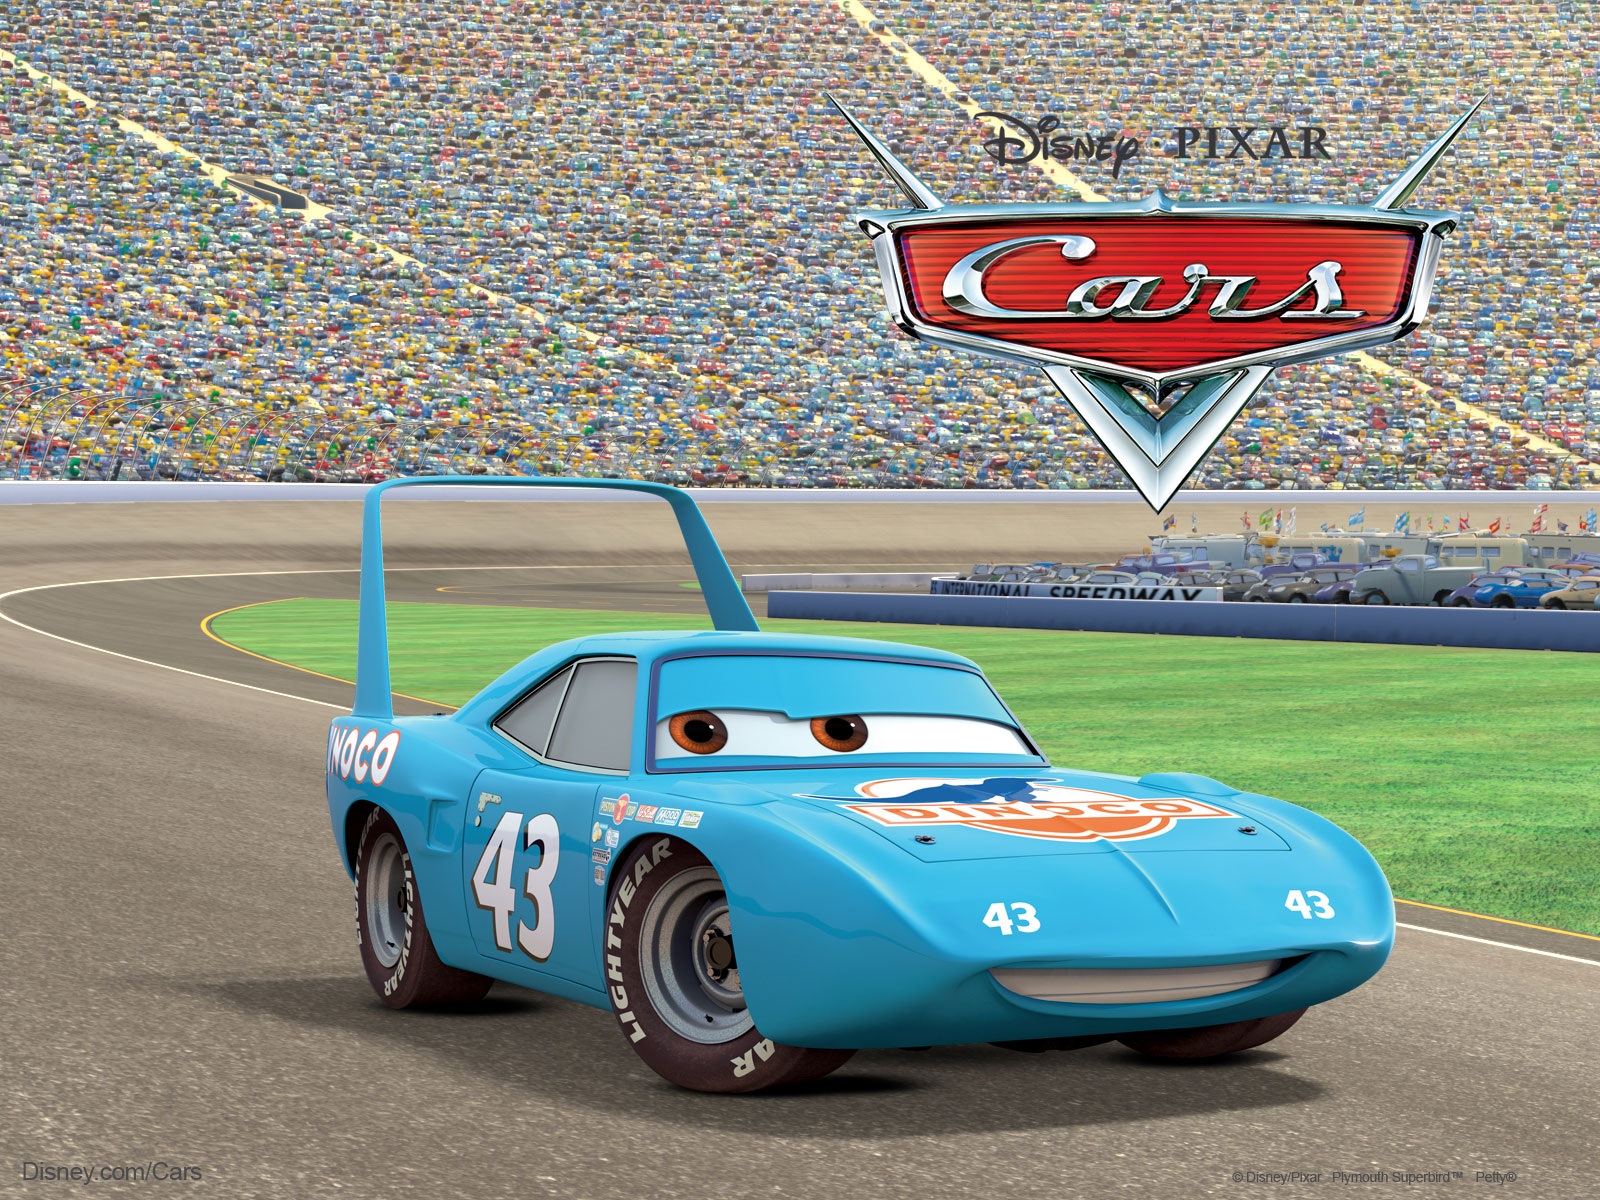 King-Pixar-Cars-Petty-Blue